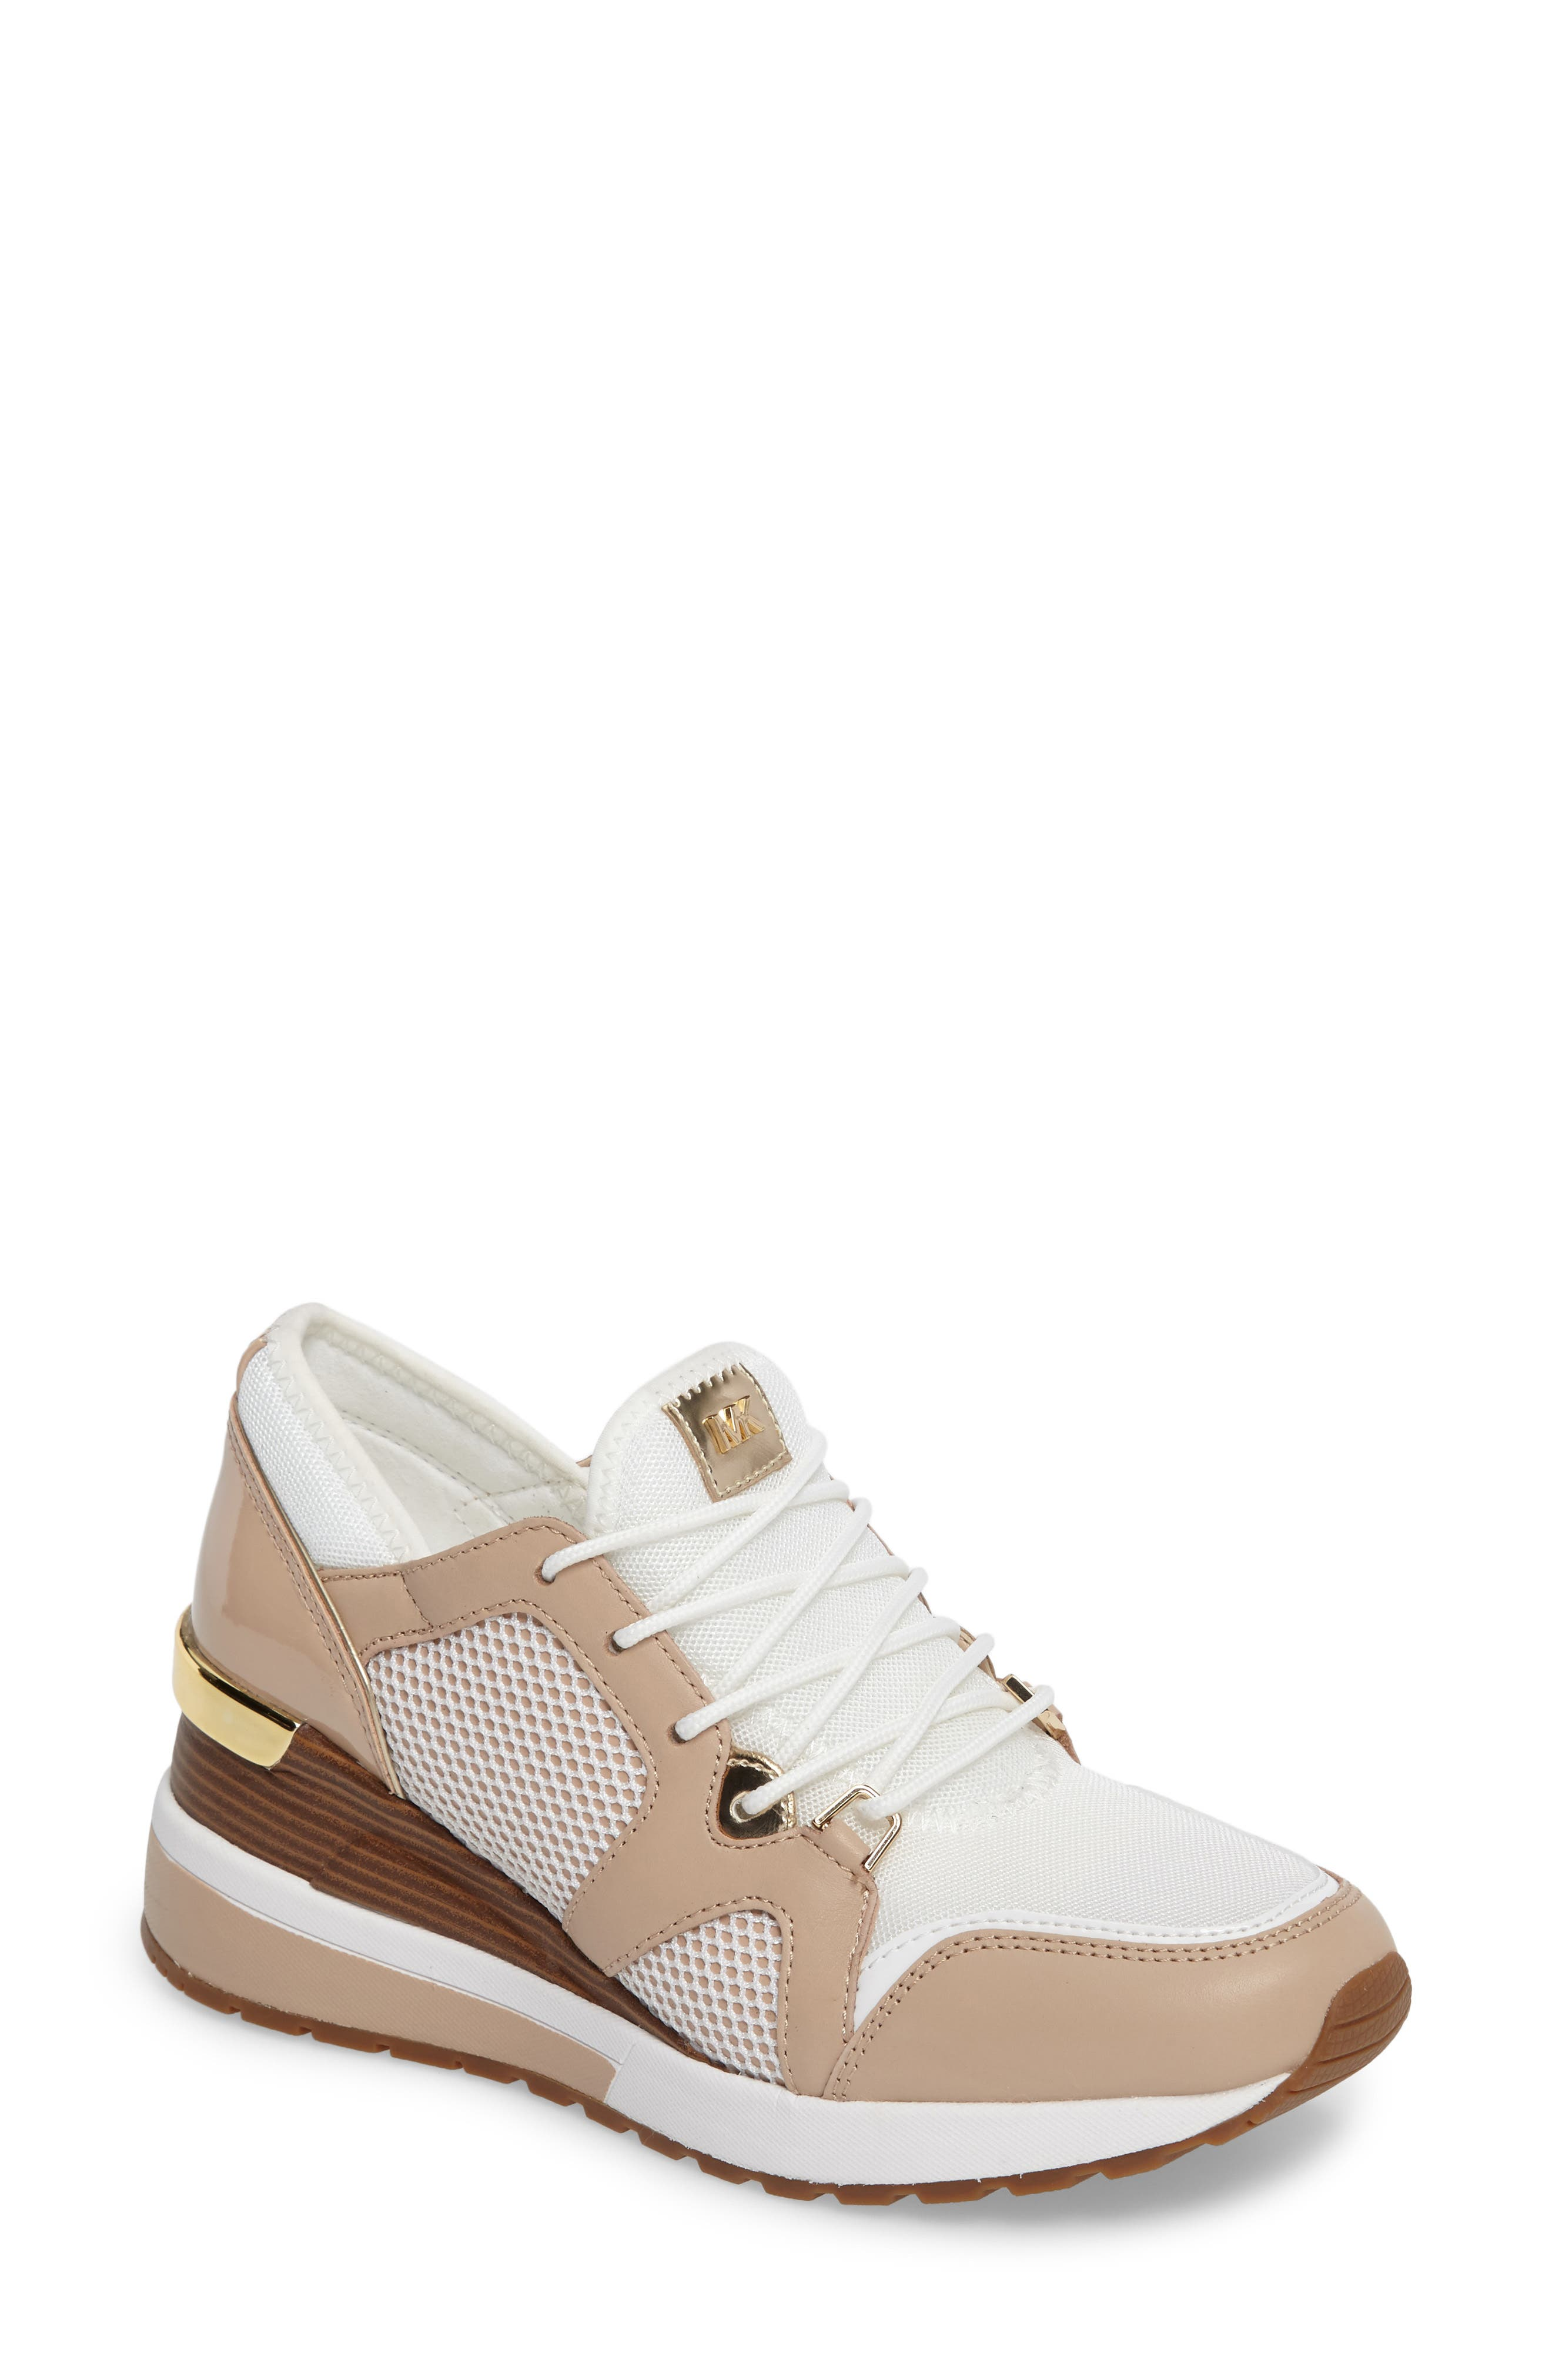 Scout Wedge Sneaker,                             Main thumbnail 1, color,                             Optic White/ Oyster